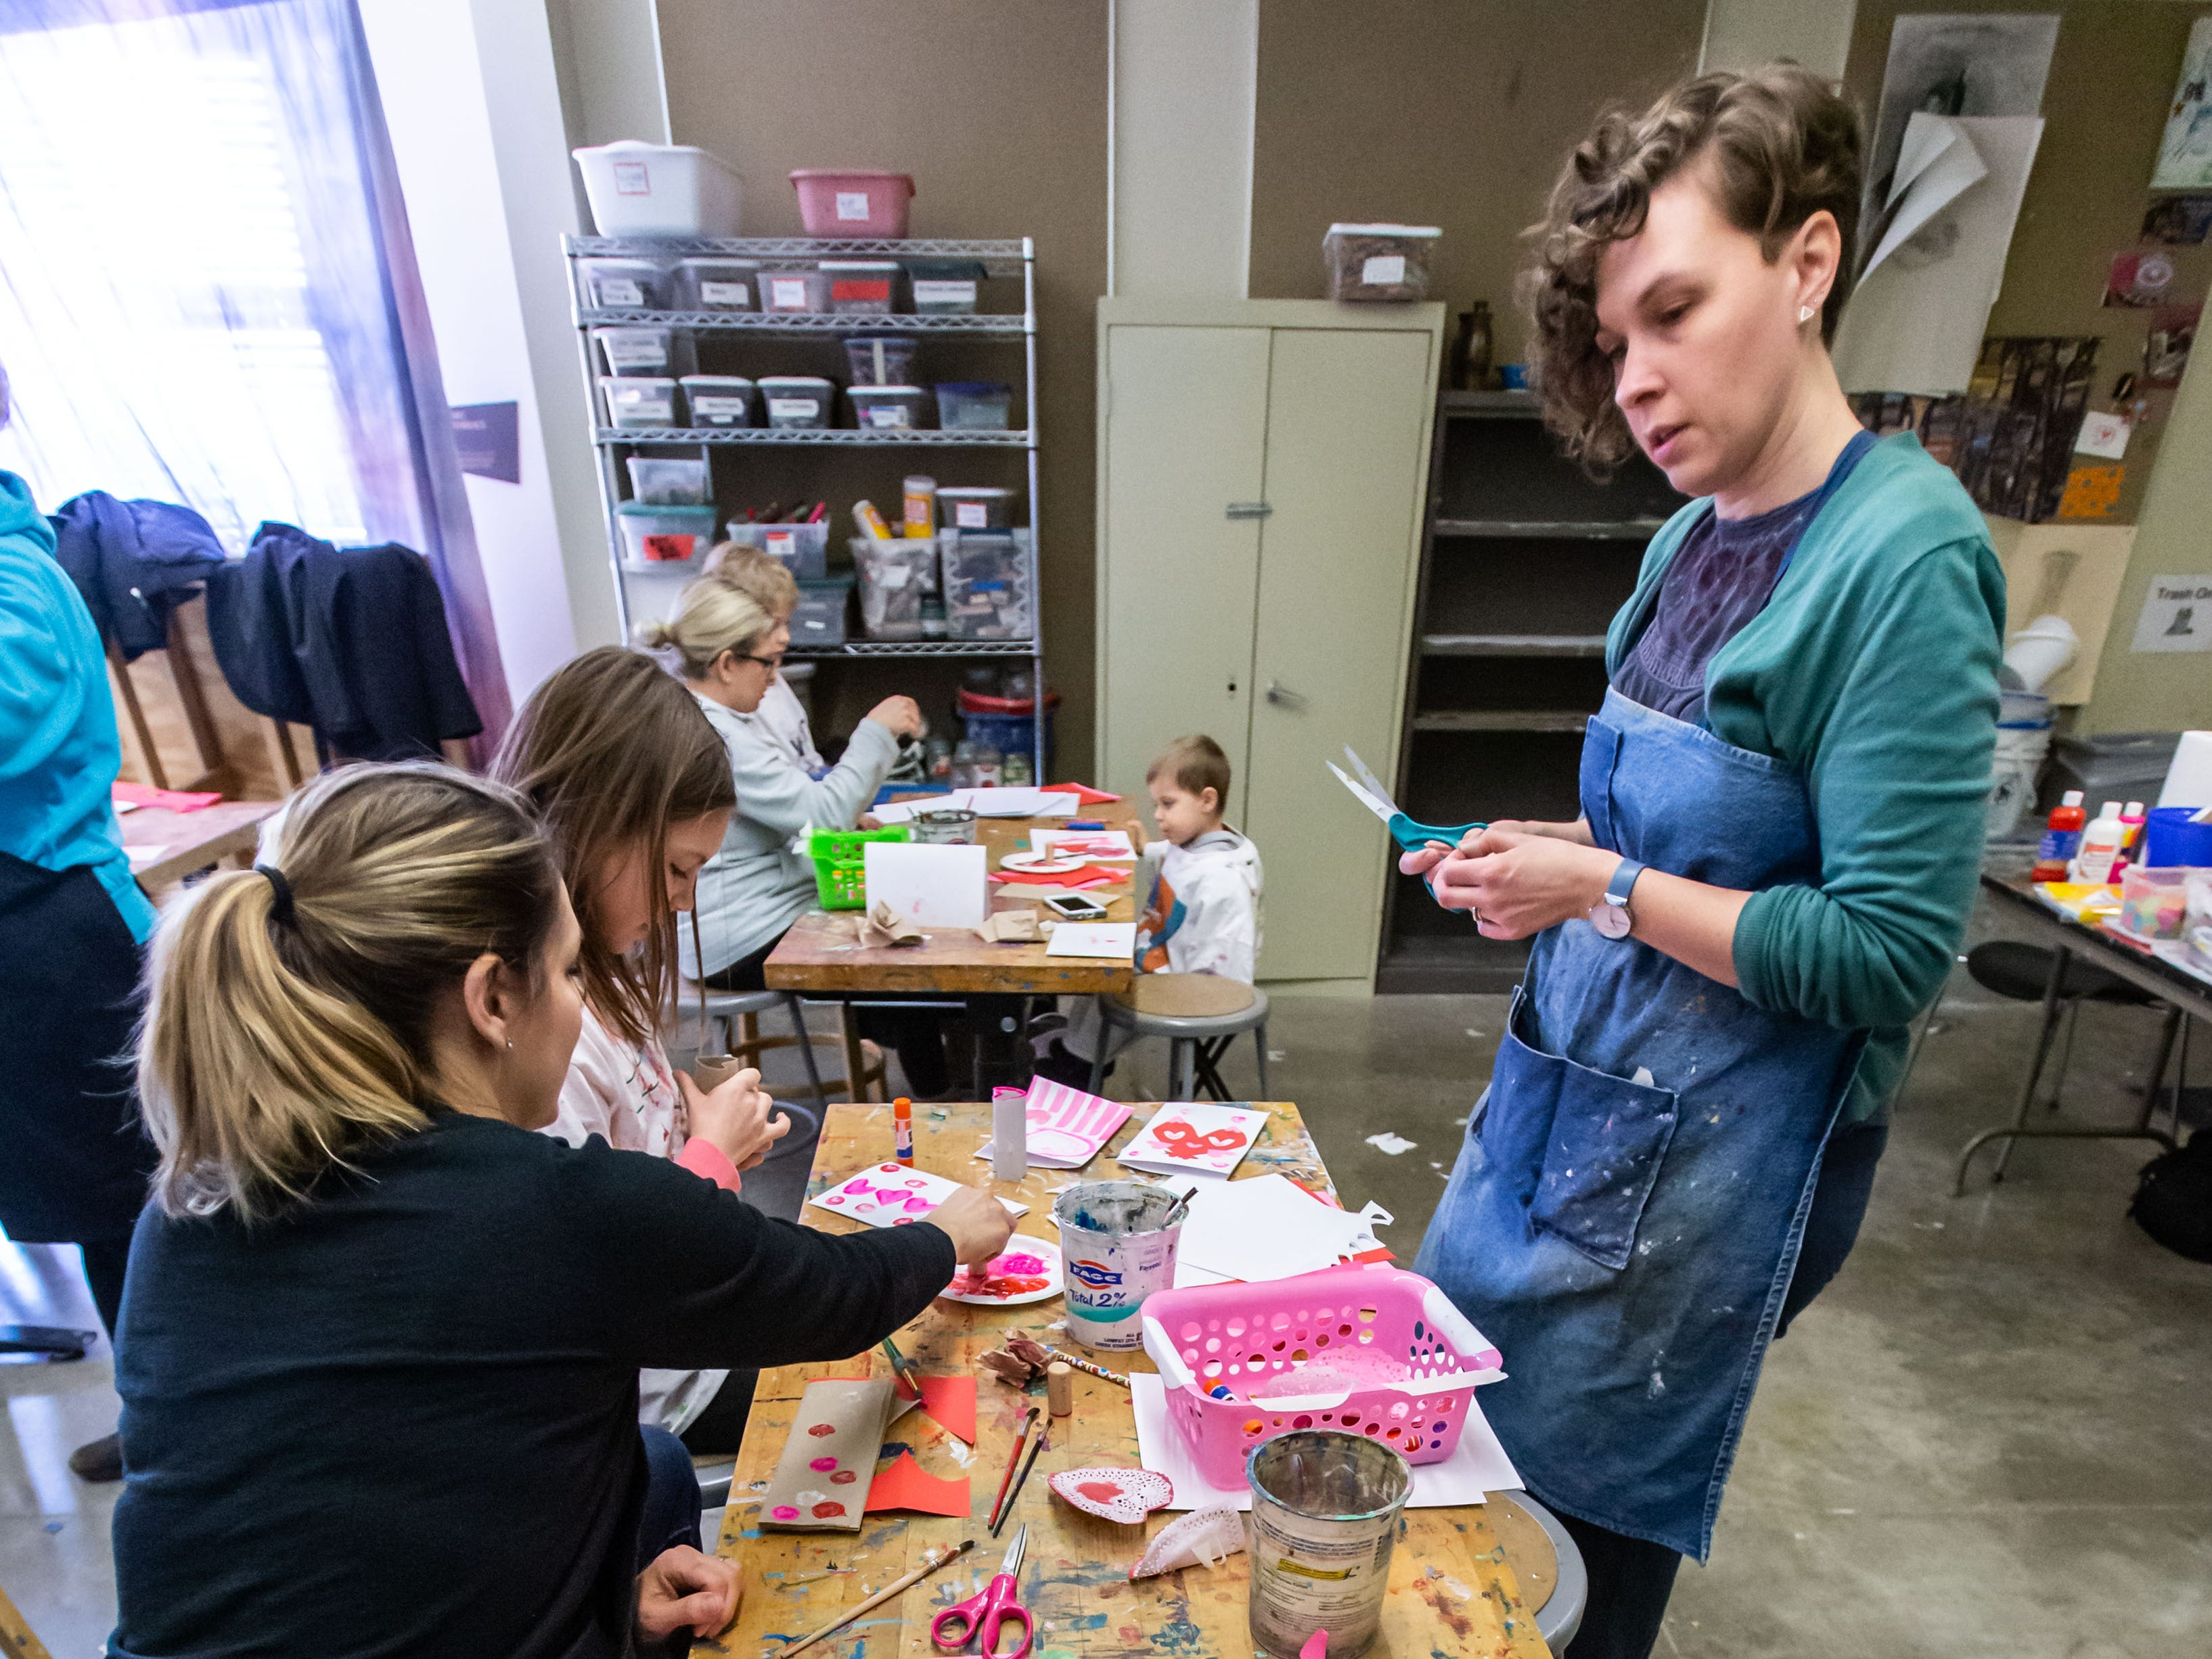 Burlington artist Tiffany Knopow (right) answers questions on creating printed Valentine's Day cards during the Free Family Art Workshop at the Sharon Lynne Wilson Center for the Arts in Brookfield on Saturday, Feb. 9, 2019. The free art workshops are held from 10 a.m. to noon on the second Saturday of each month. For more info visit wilson-center.com/classes.